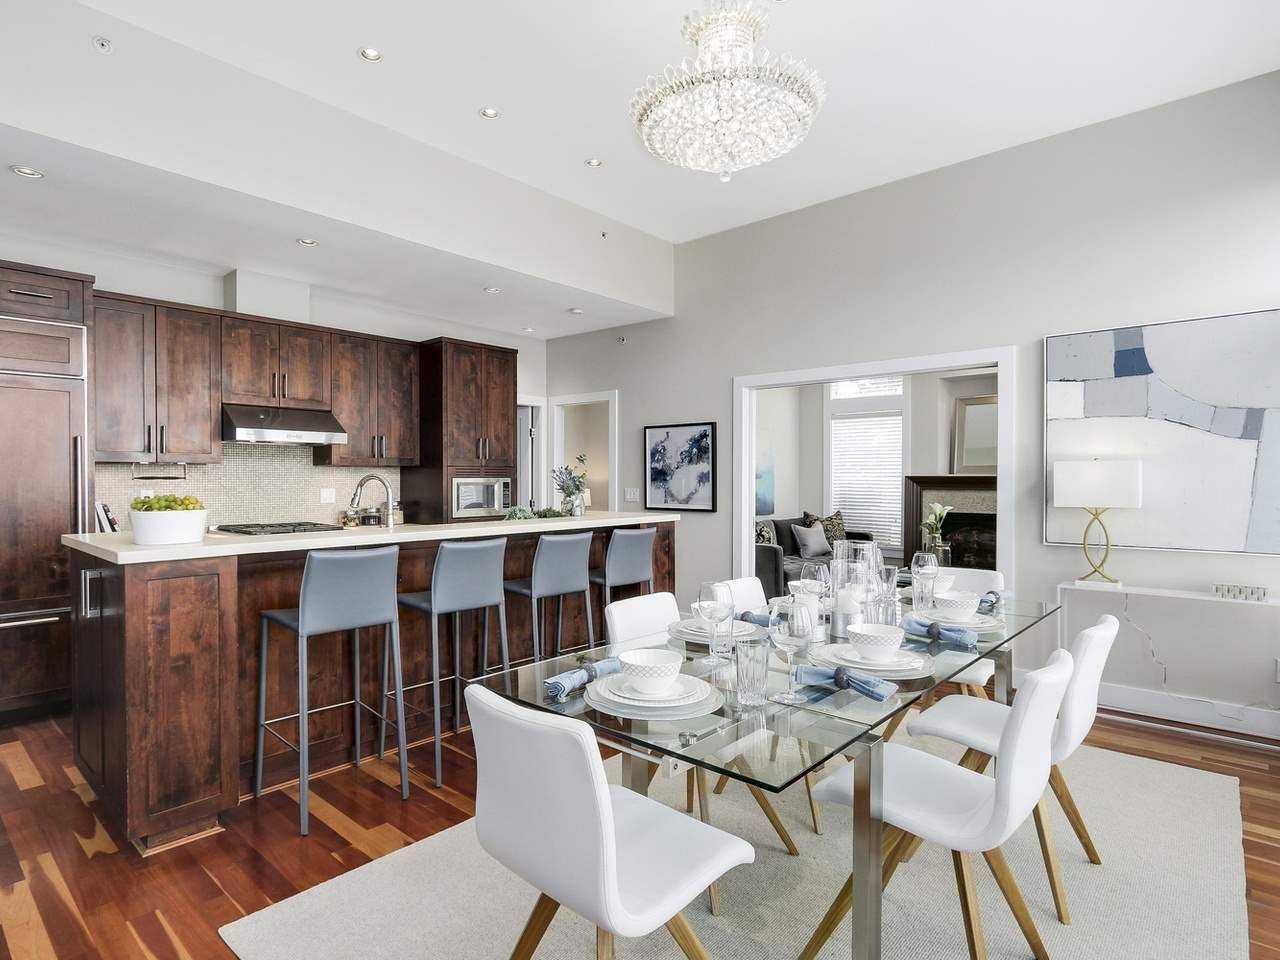 """Photo 5: Photos: 404 6328 LARKIN Drive in Vancouver: University VW Condo for sale in """"Journey"""" (Vancouver West)  : MLS®# R2146632"""